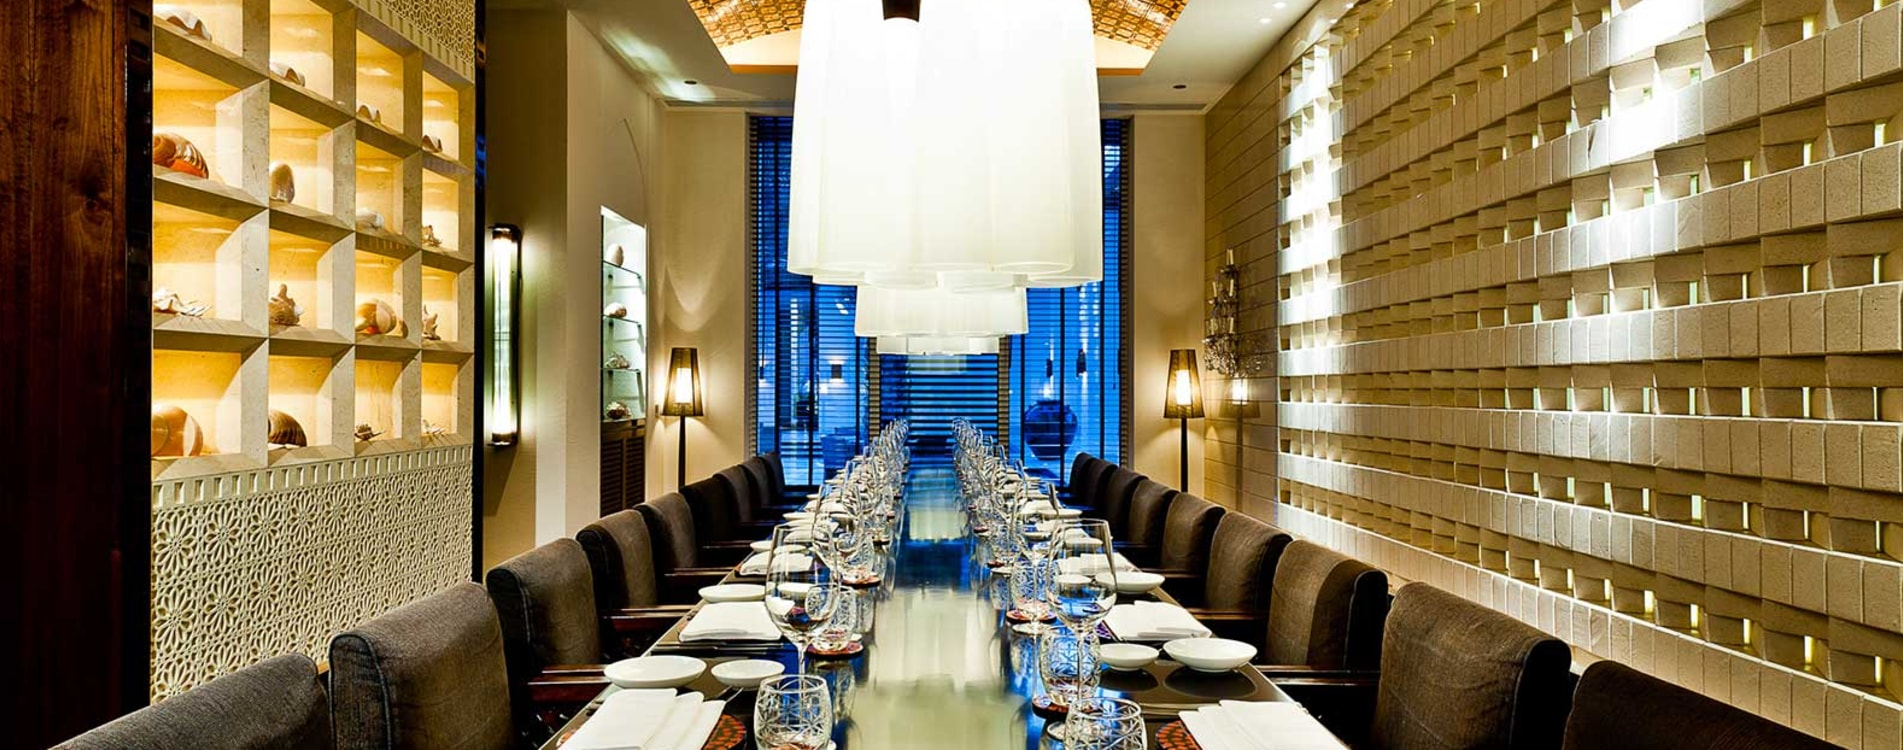 Chedi-Muscat-Dining-Restaurant-Datai-Private-Dining-Room.jpg